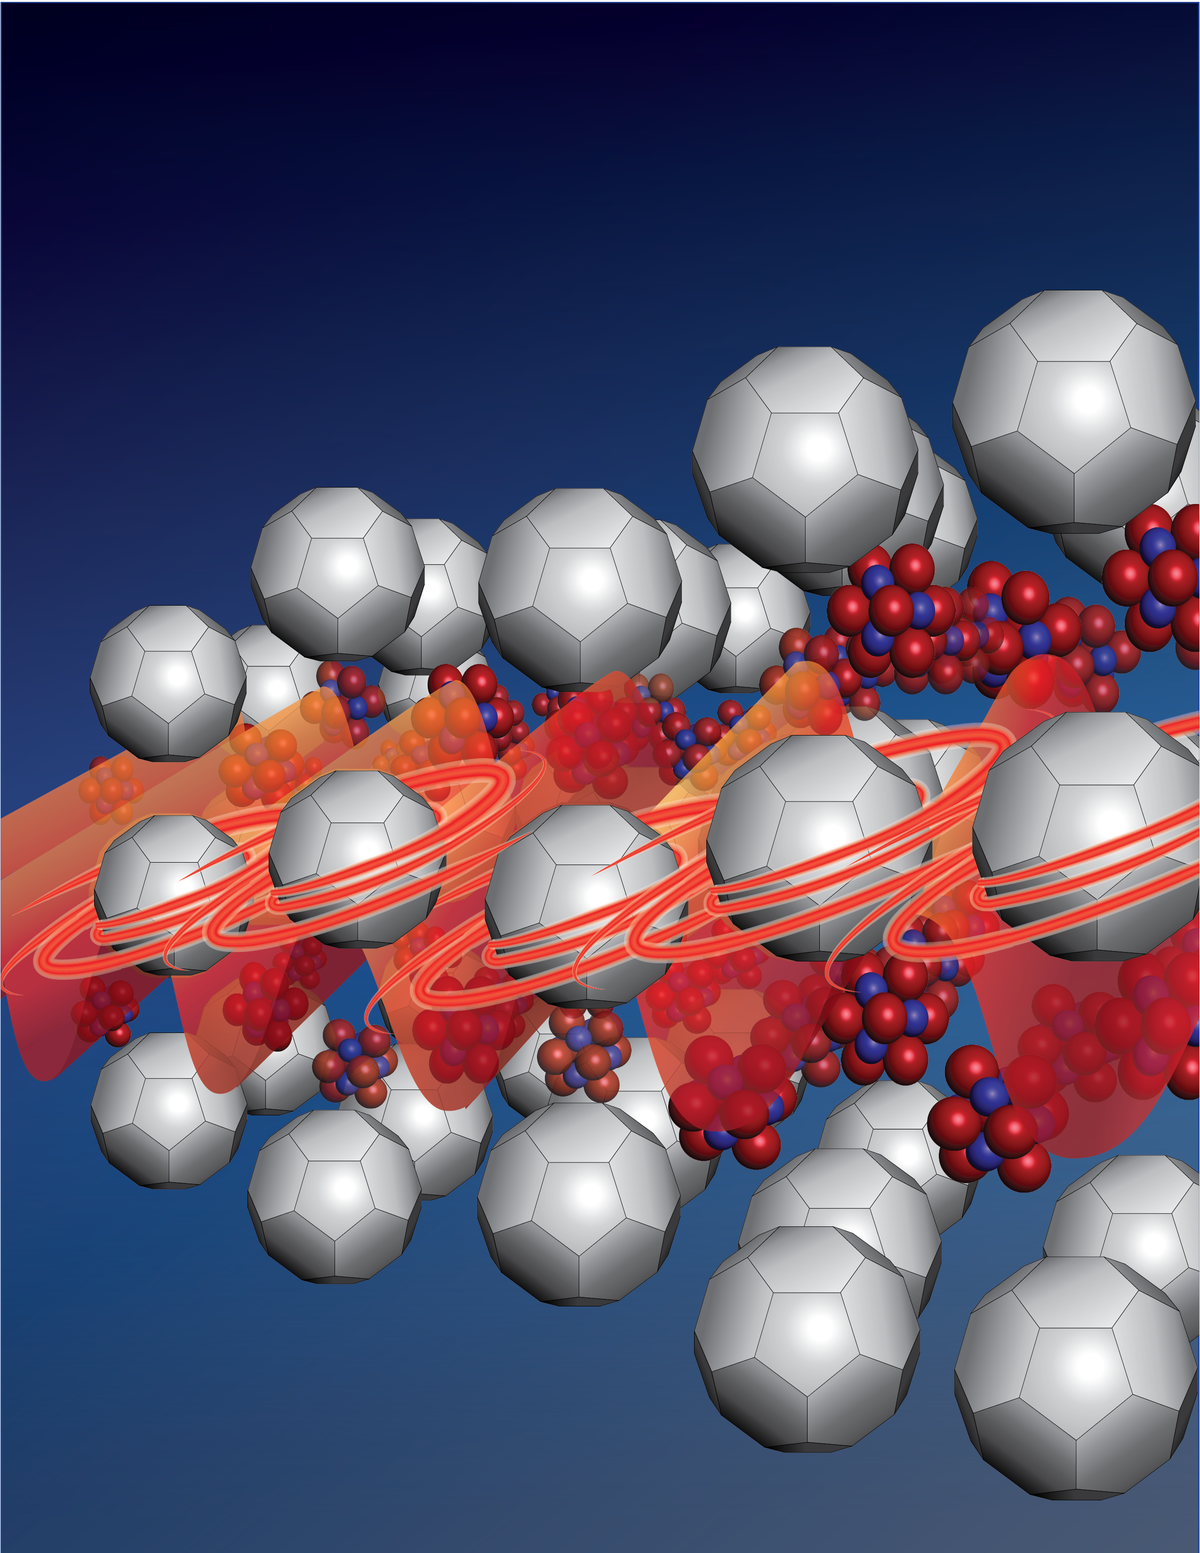 Researchers discover the cause of vastly different thermal conductivities in superatomic structural analogues